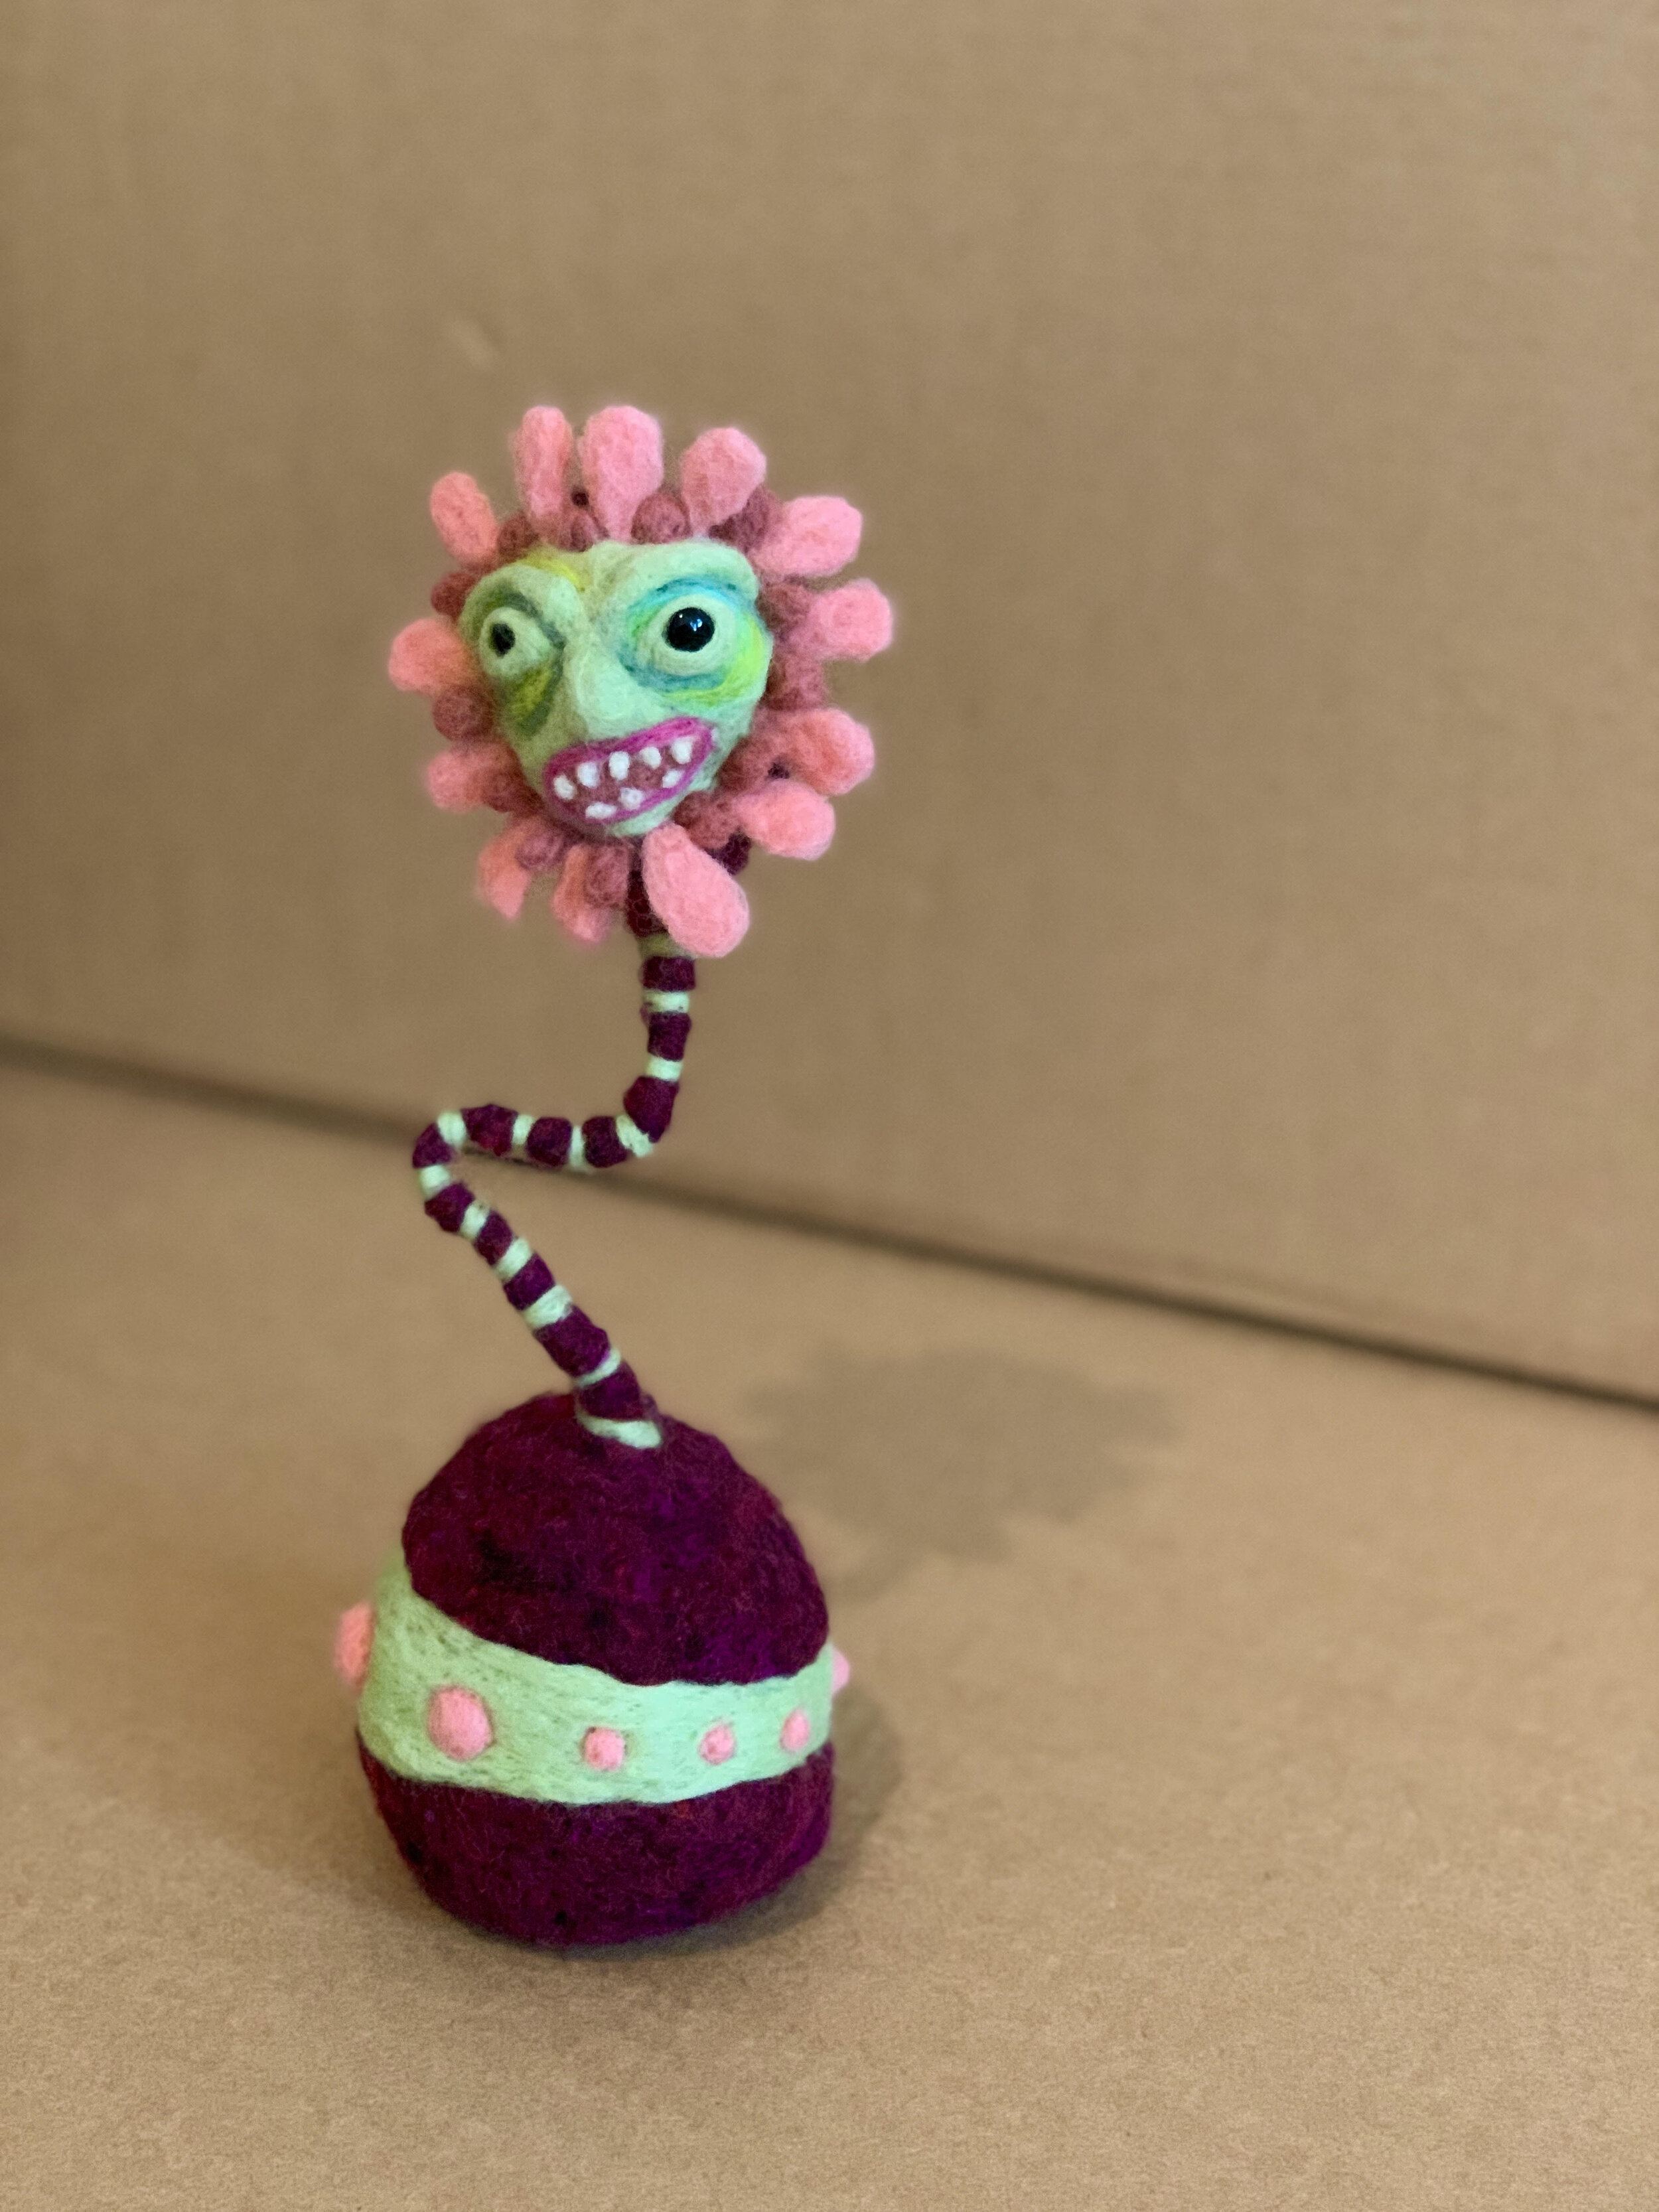 Flower With A Grimace - 11 in tall and 4 inches in diameter at base$85